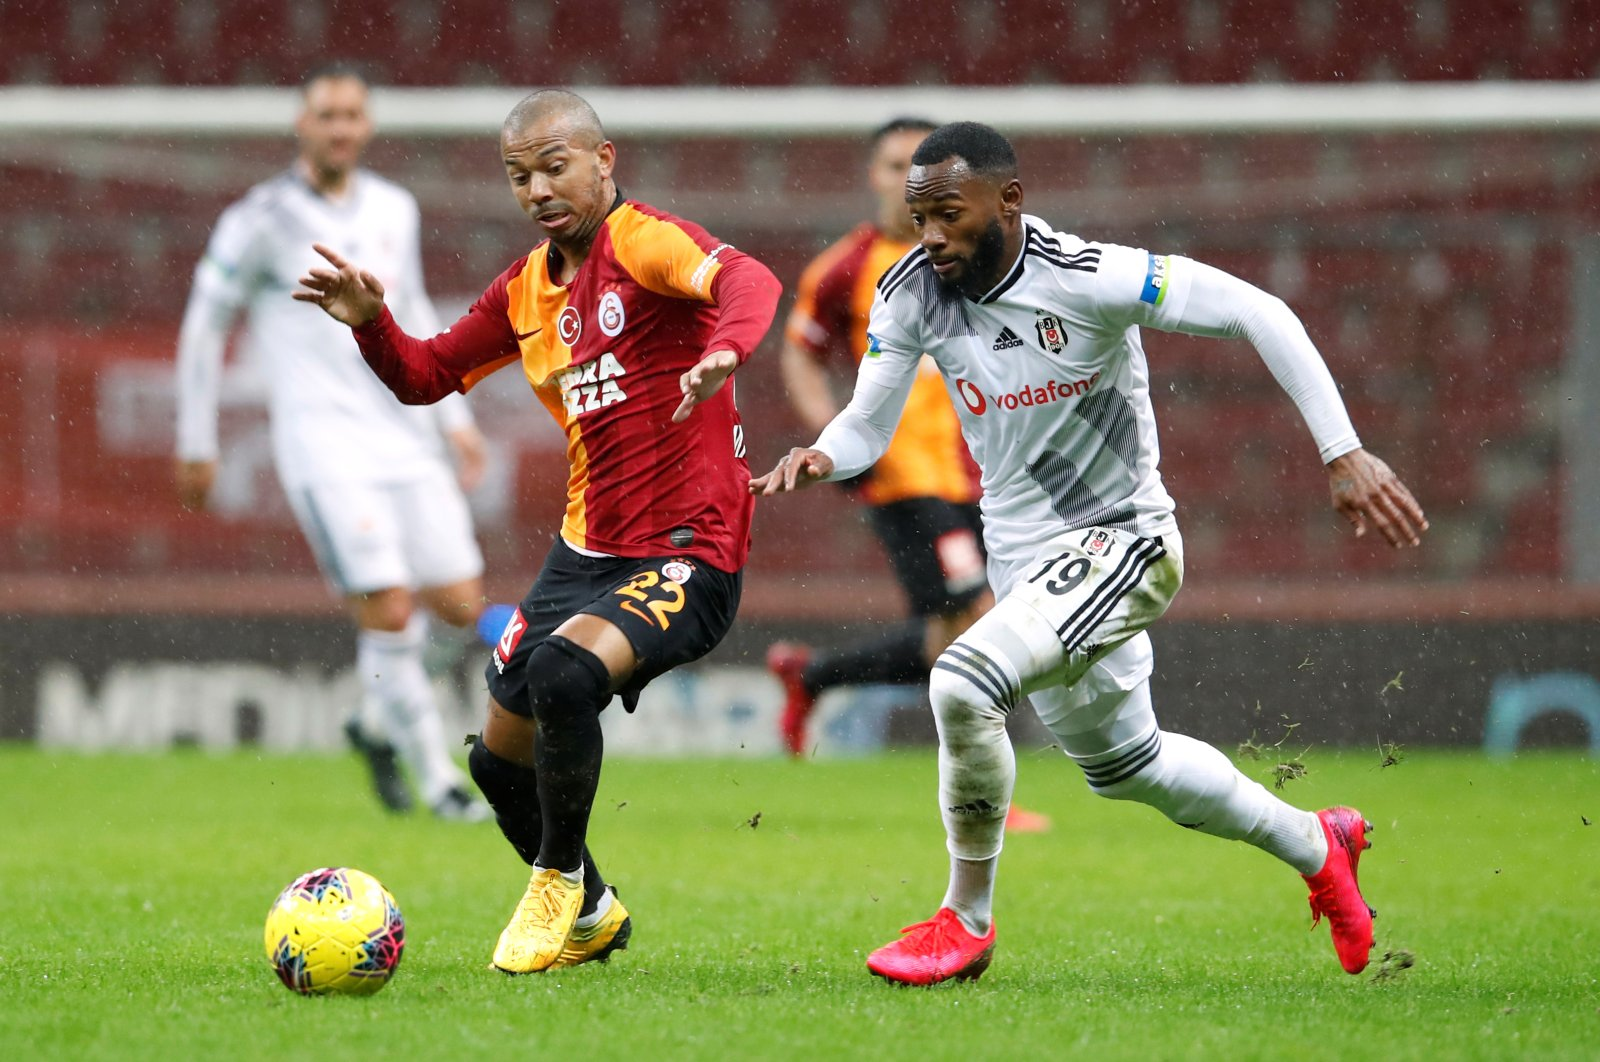 Galatasaray's Mariano in action with Besiktaş's Georges-Kevin Nkoudou during a Süper Lig Match in Istanbul, March 15, 2020. (Reuters Photo)